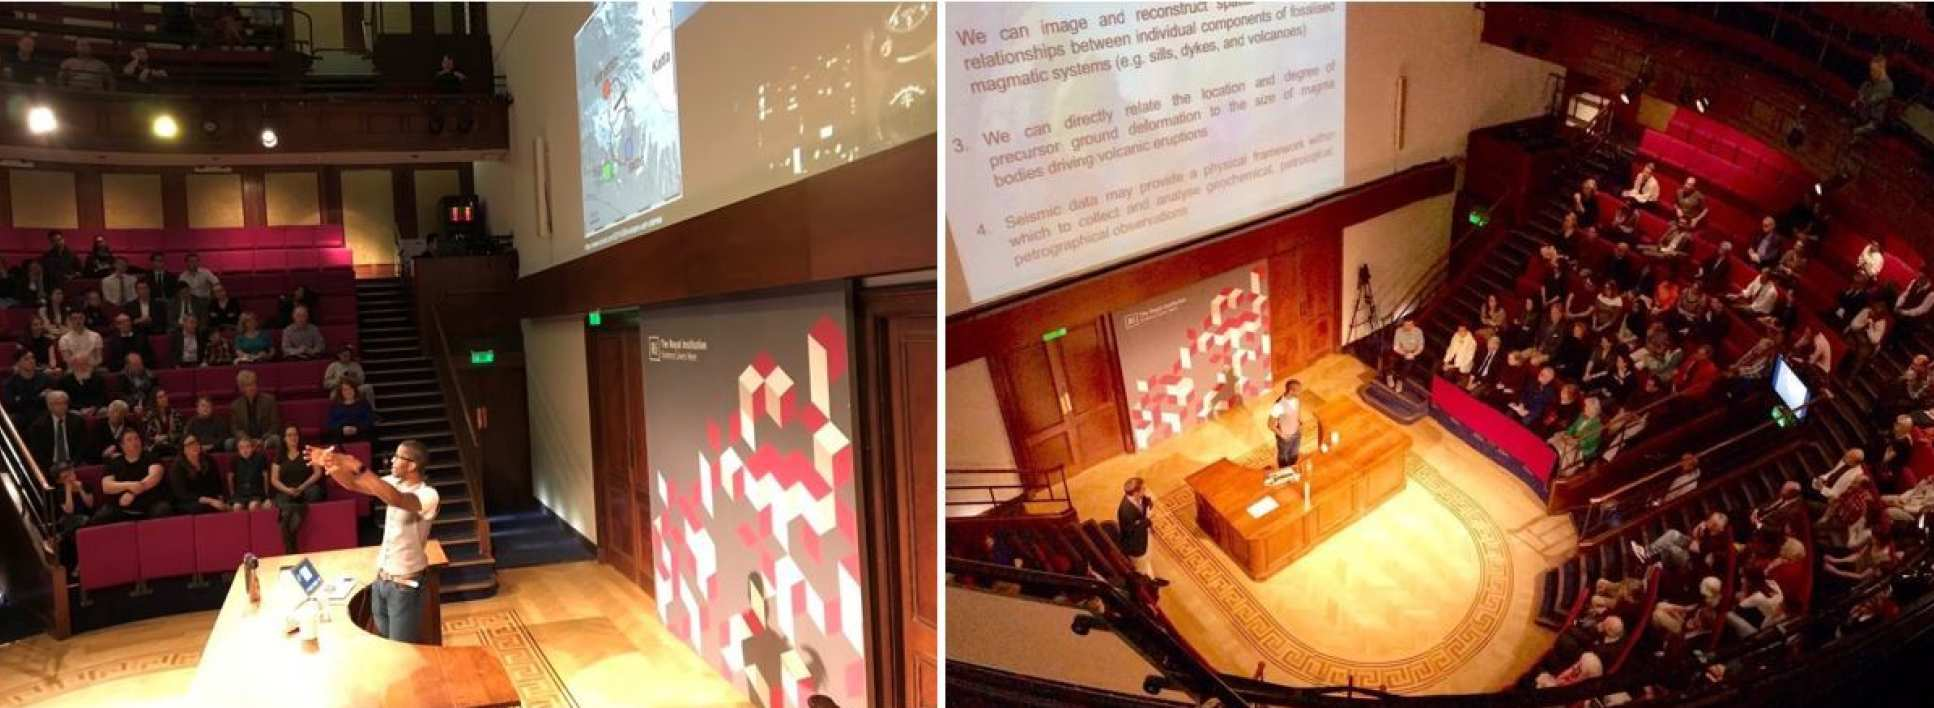 Chris at the Royal Institution